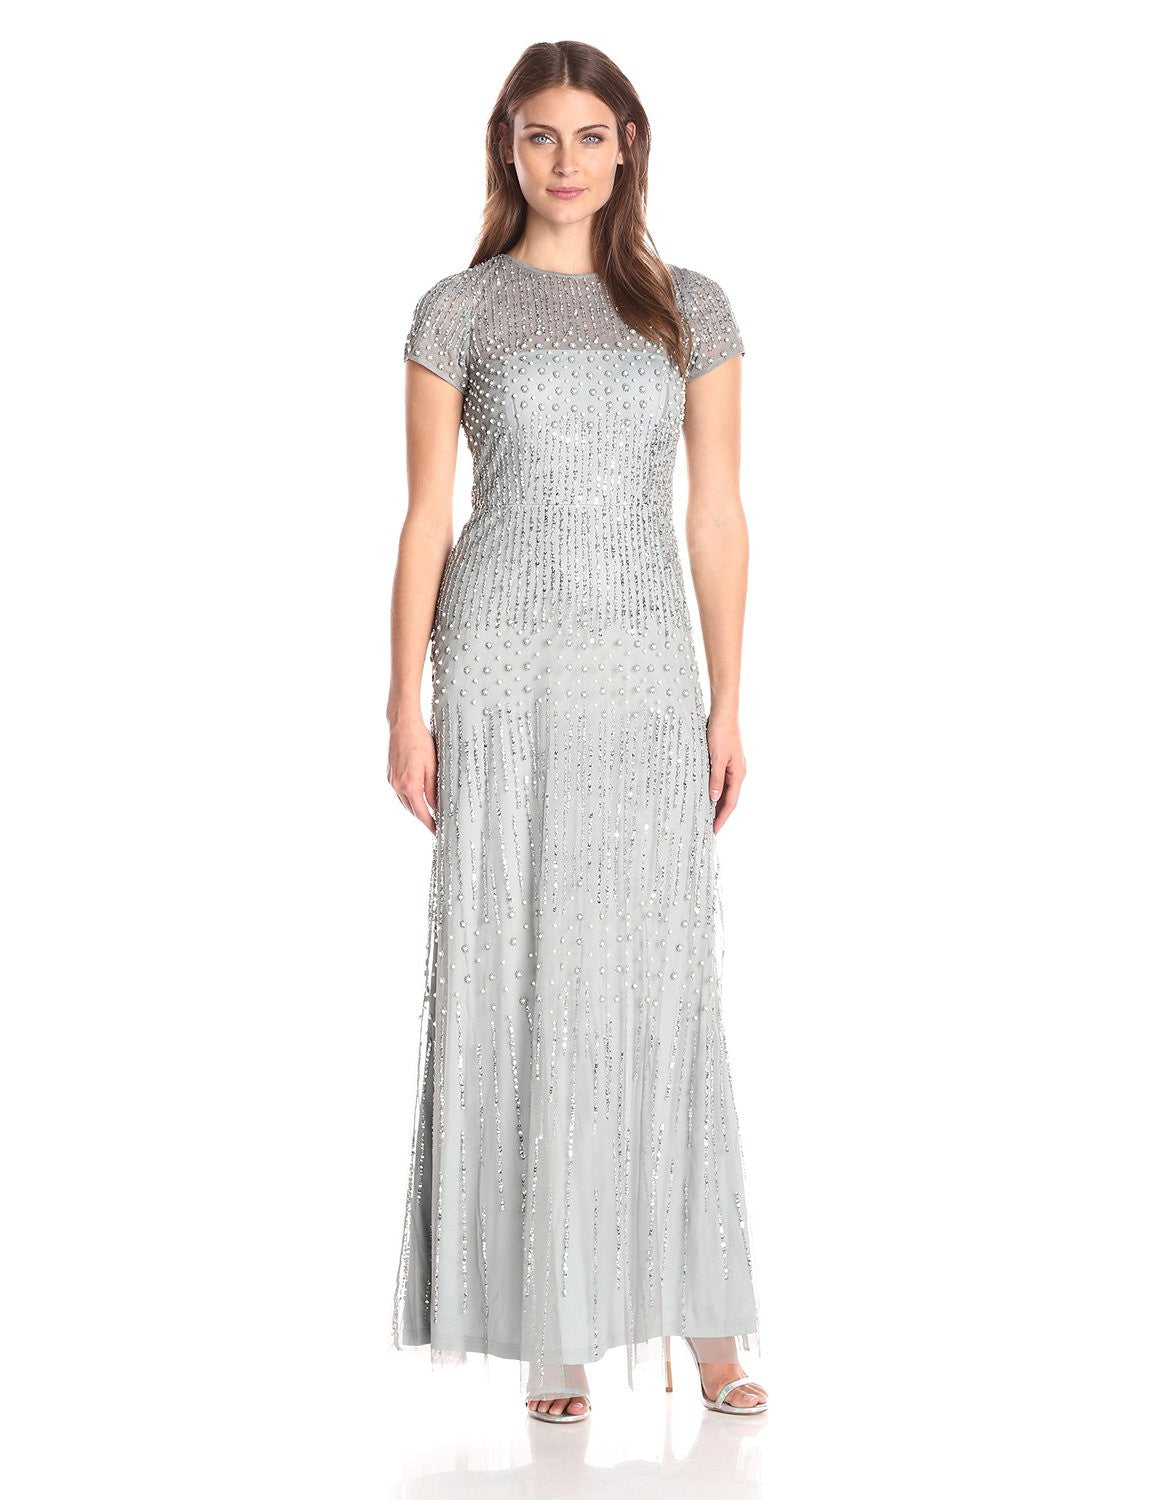 Adrianna papell gown short sleeve deco - Adrianna Papell Short Sleeve Beaded Mermaid Gown Blue Mist